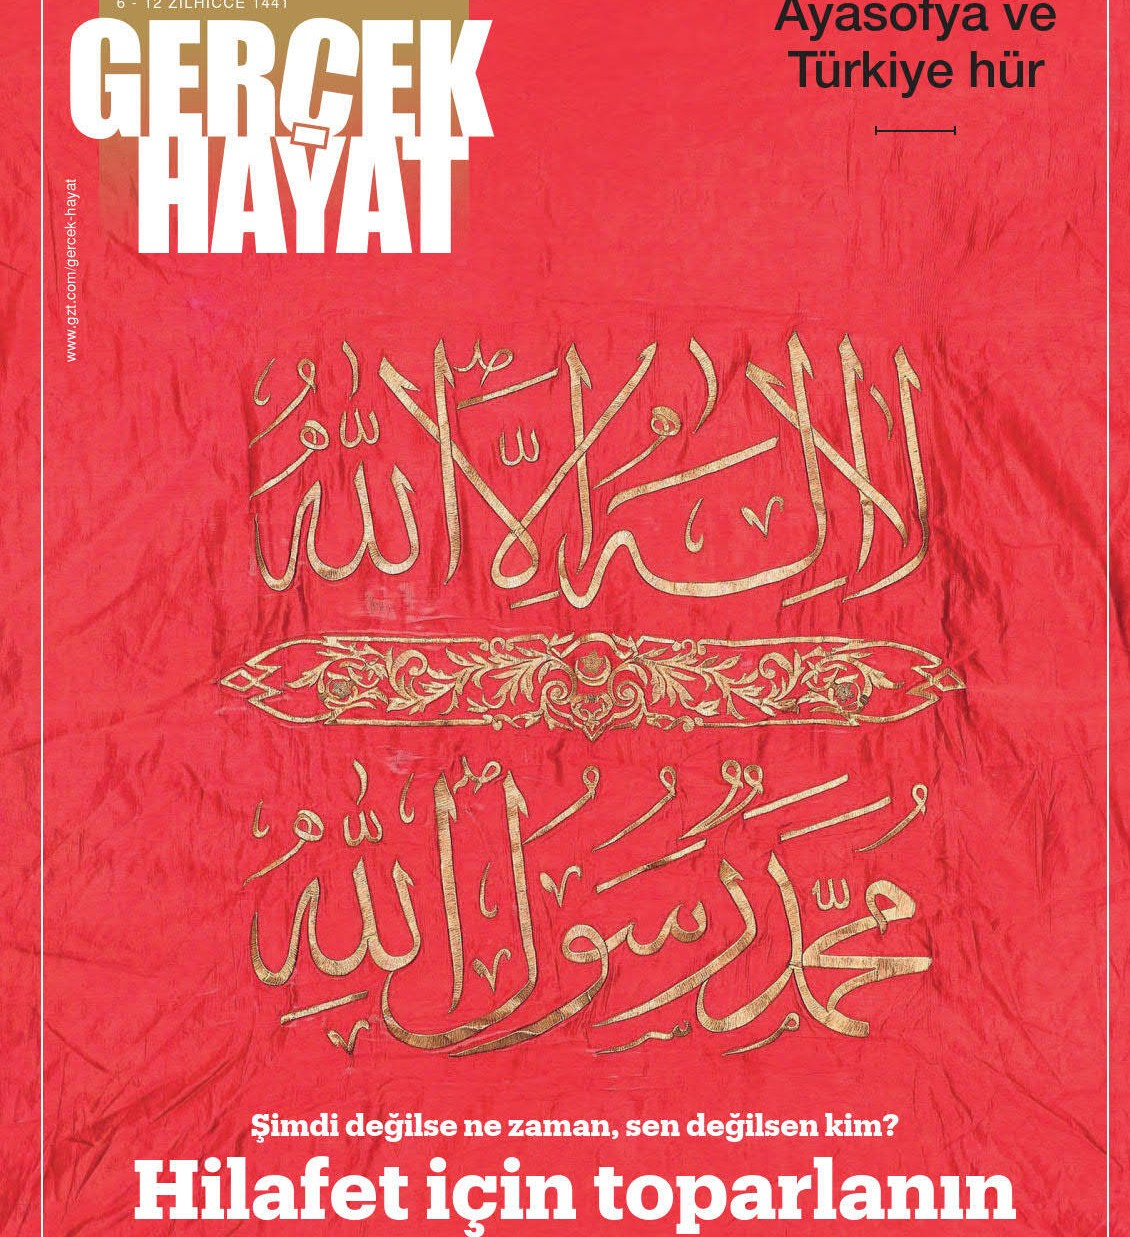 A Turkish magazine wants the caliphate back. Controversy followed